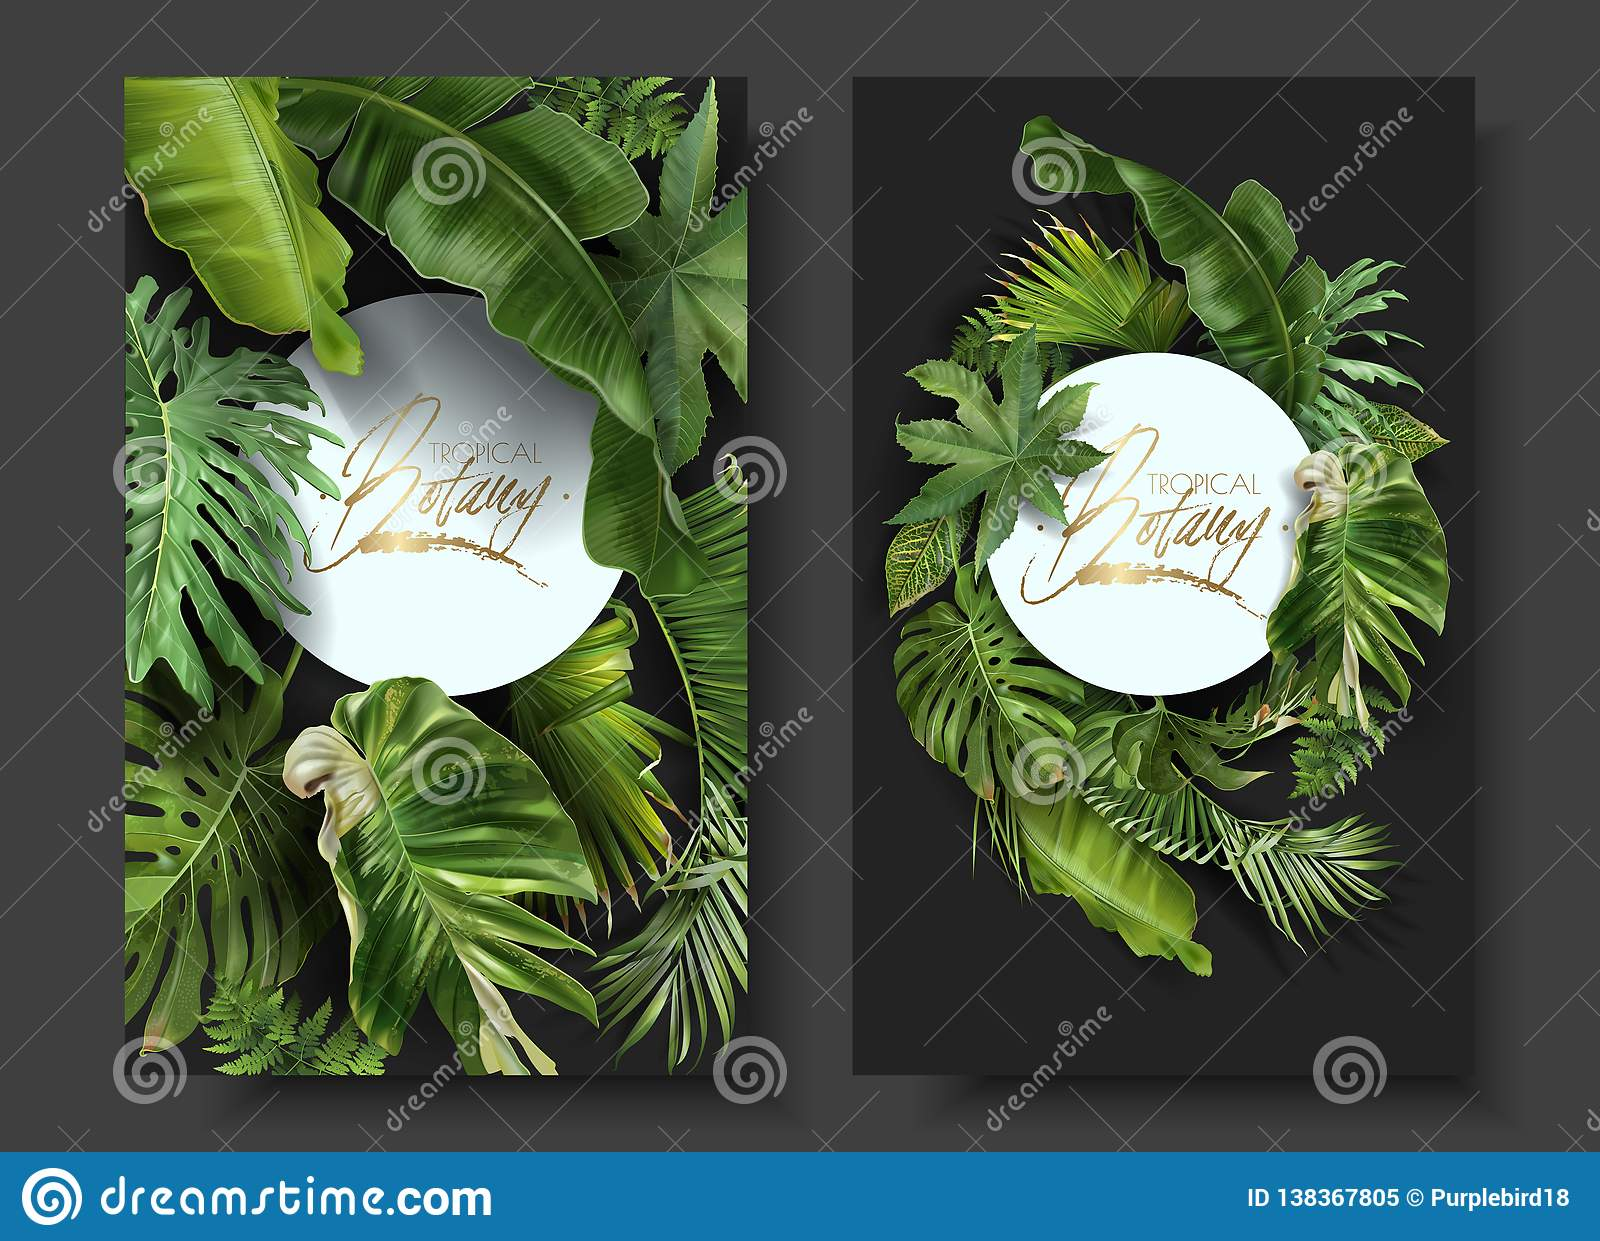 Vector Round Banners With Green Tropical Leaves Stock Vector Illustration Of Papaya Botanical 138367805